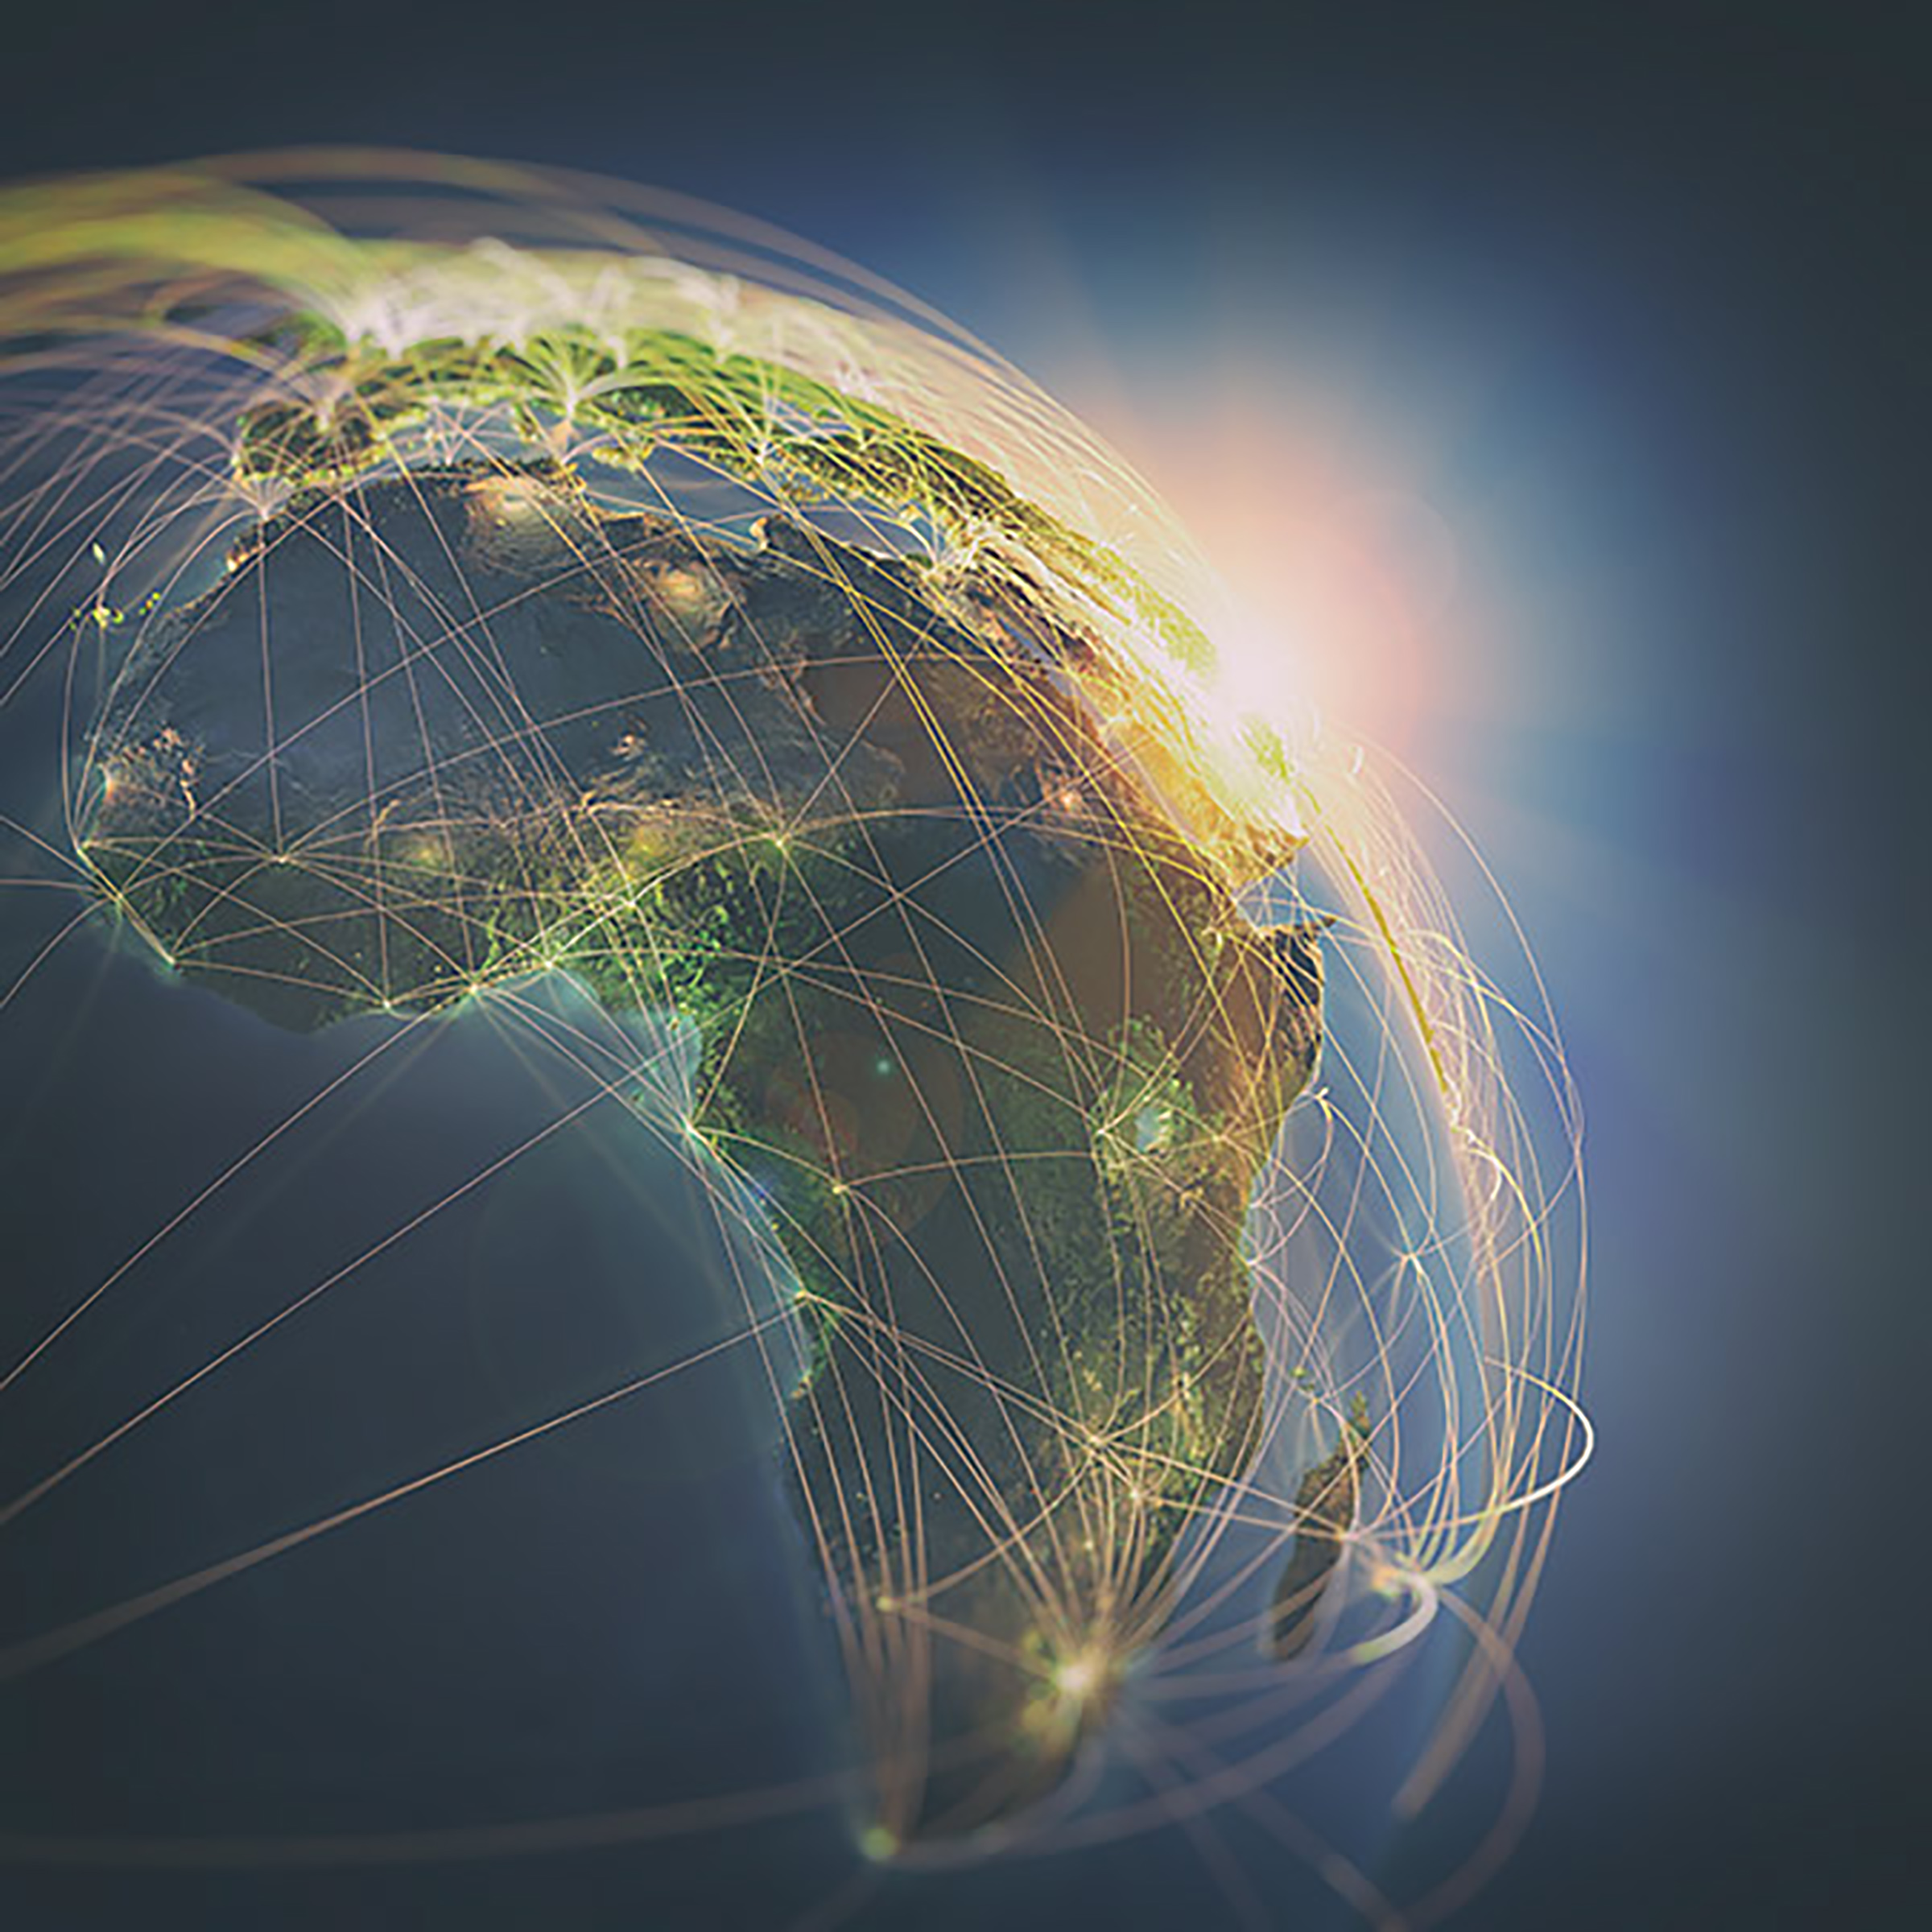 The Hinckley Institute of Politics will host a two-day summit exploring Africa's economic development and it's future.